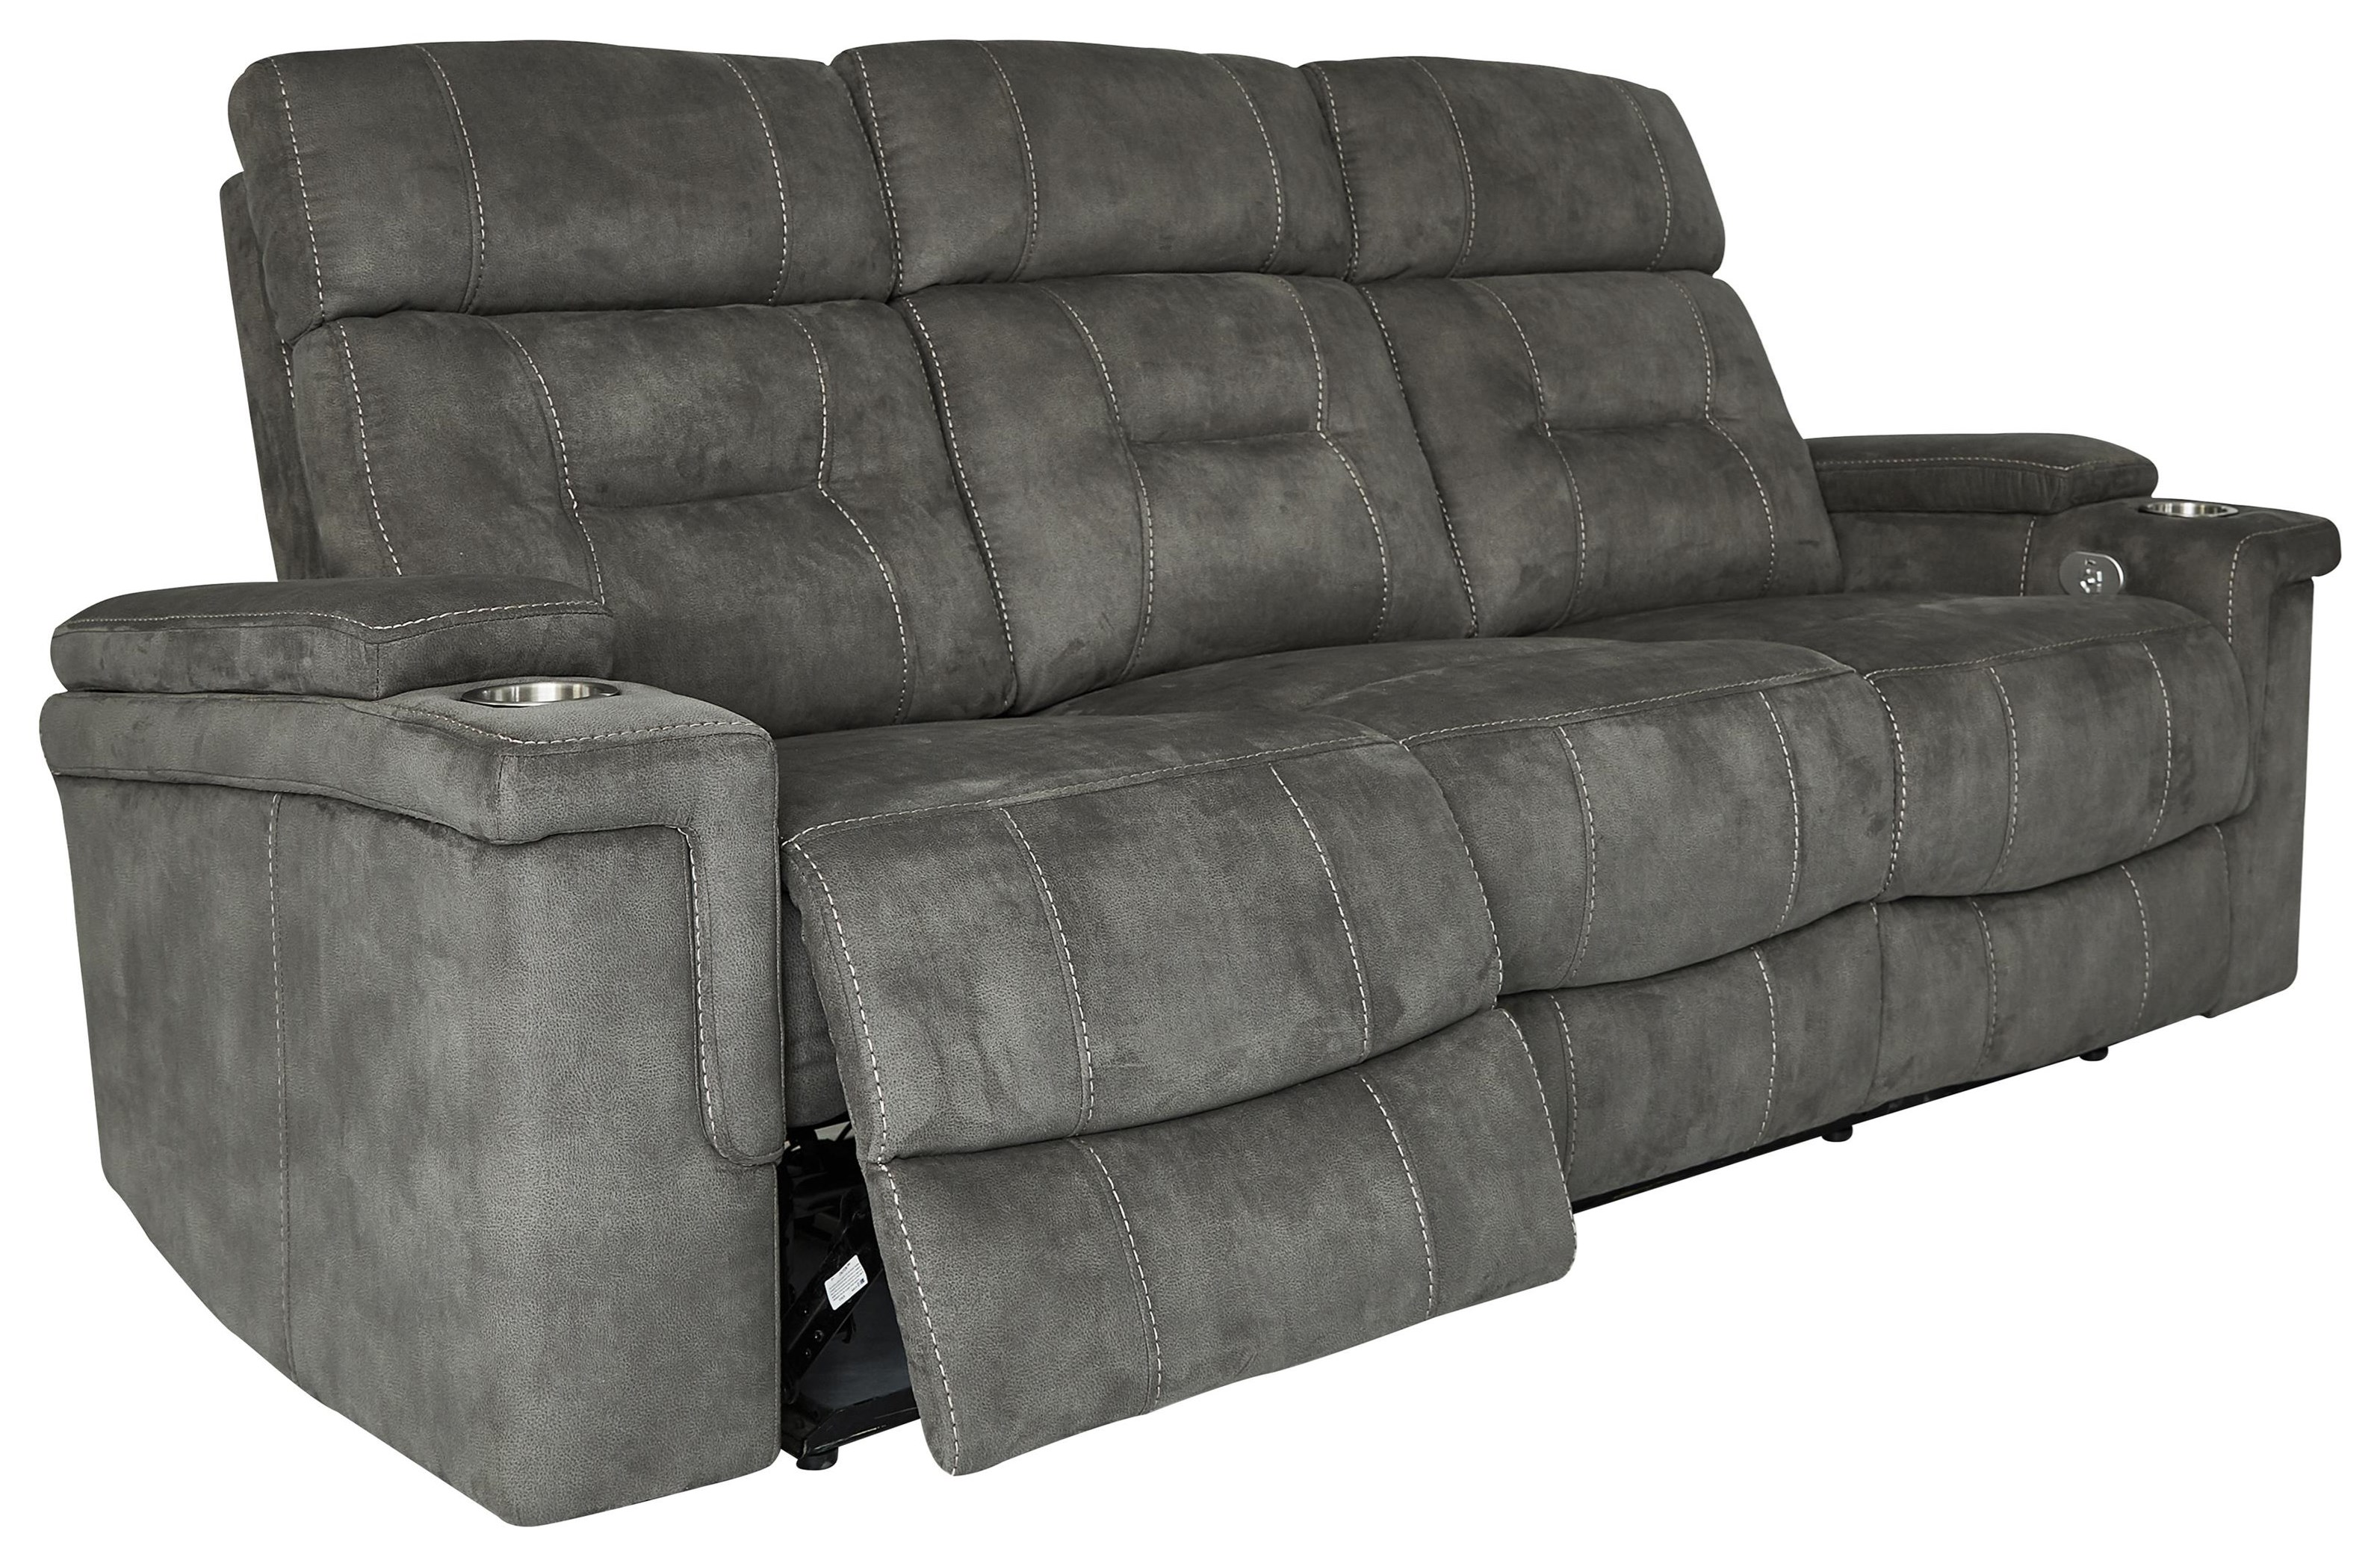 Diesel Power Reclining Sofa by Parker House at Johnny Janosik